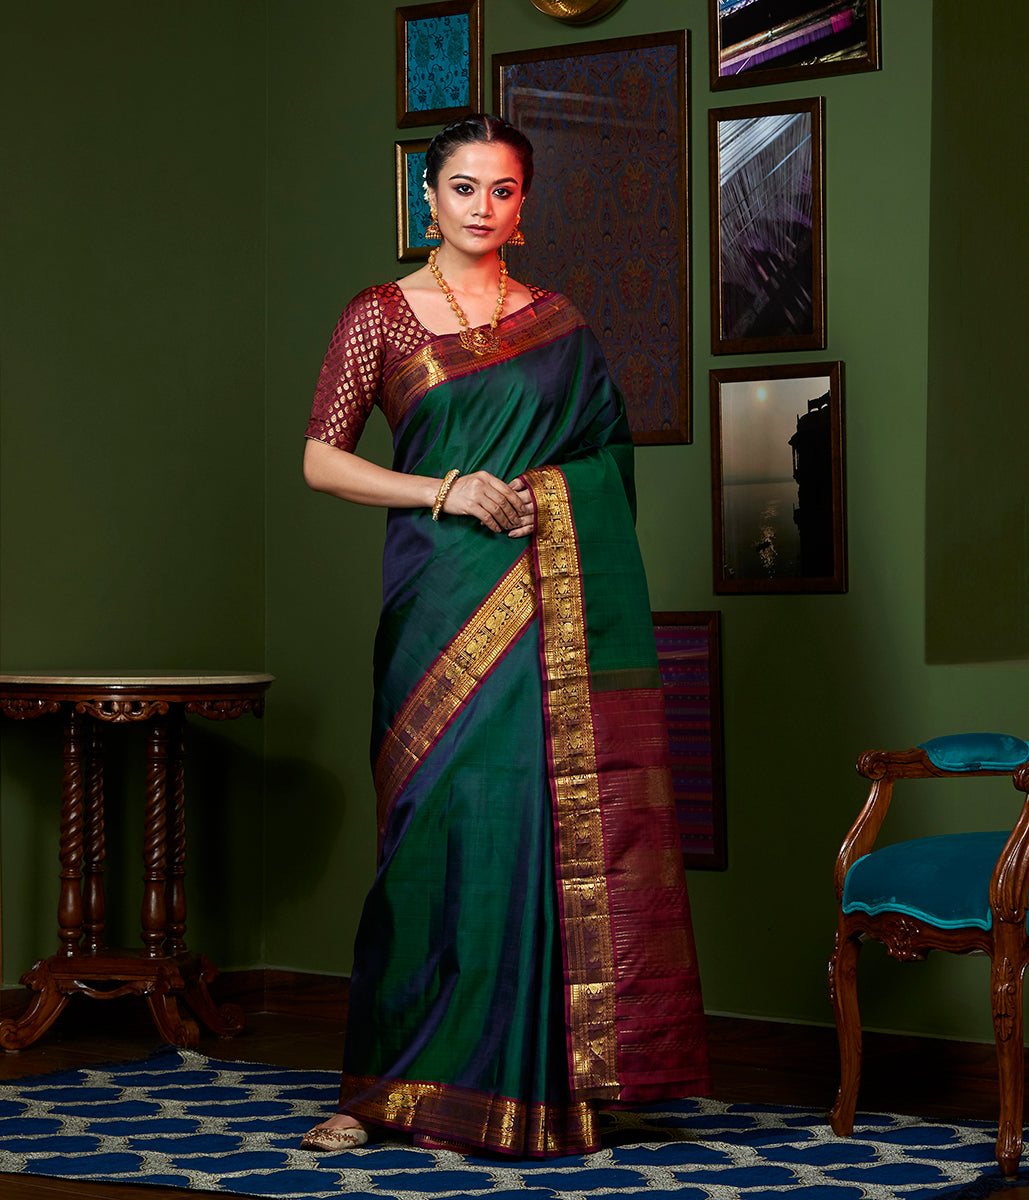 Handwoven Green and Wine Kanjivaram Silk Saree with Gold Zari Border